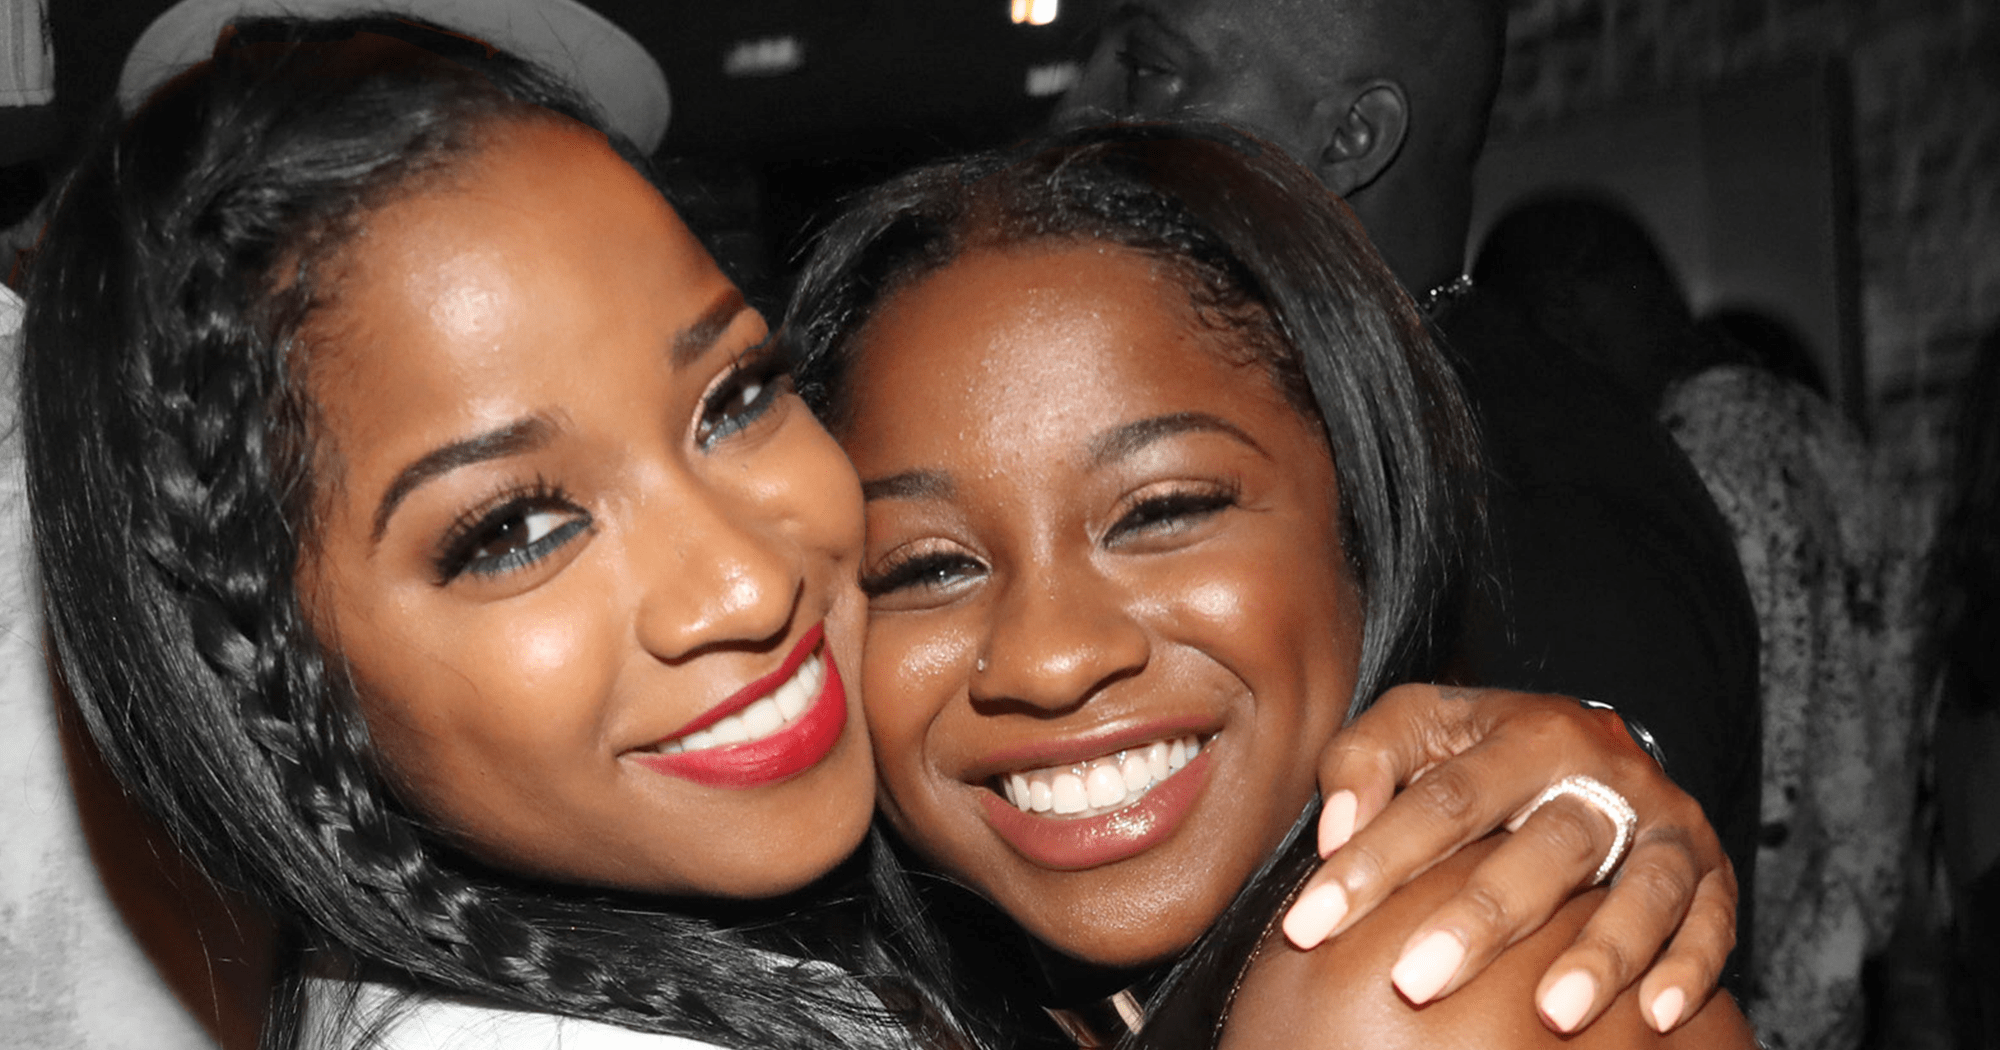 toya-wright-and-reginae-carter-are-slaying-in-the-same-versace-heels-and-handbag-which-look-would-you-rock